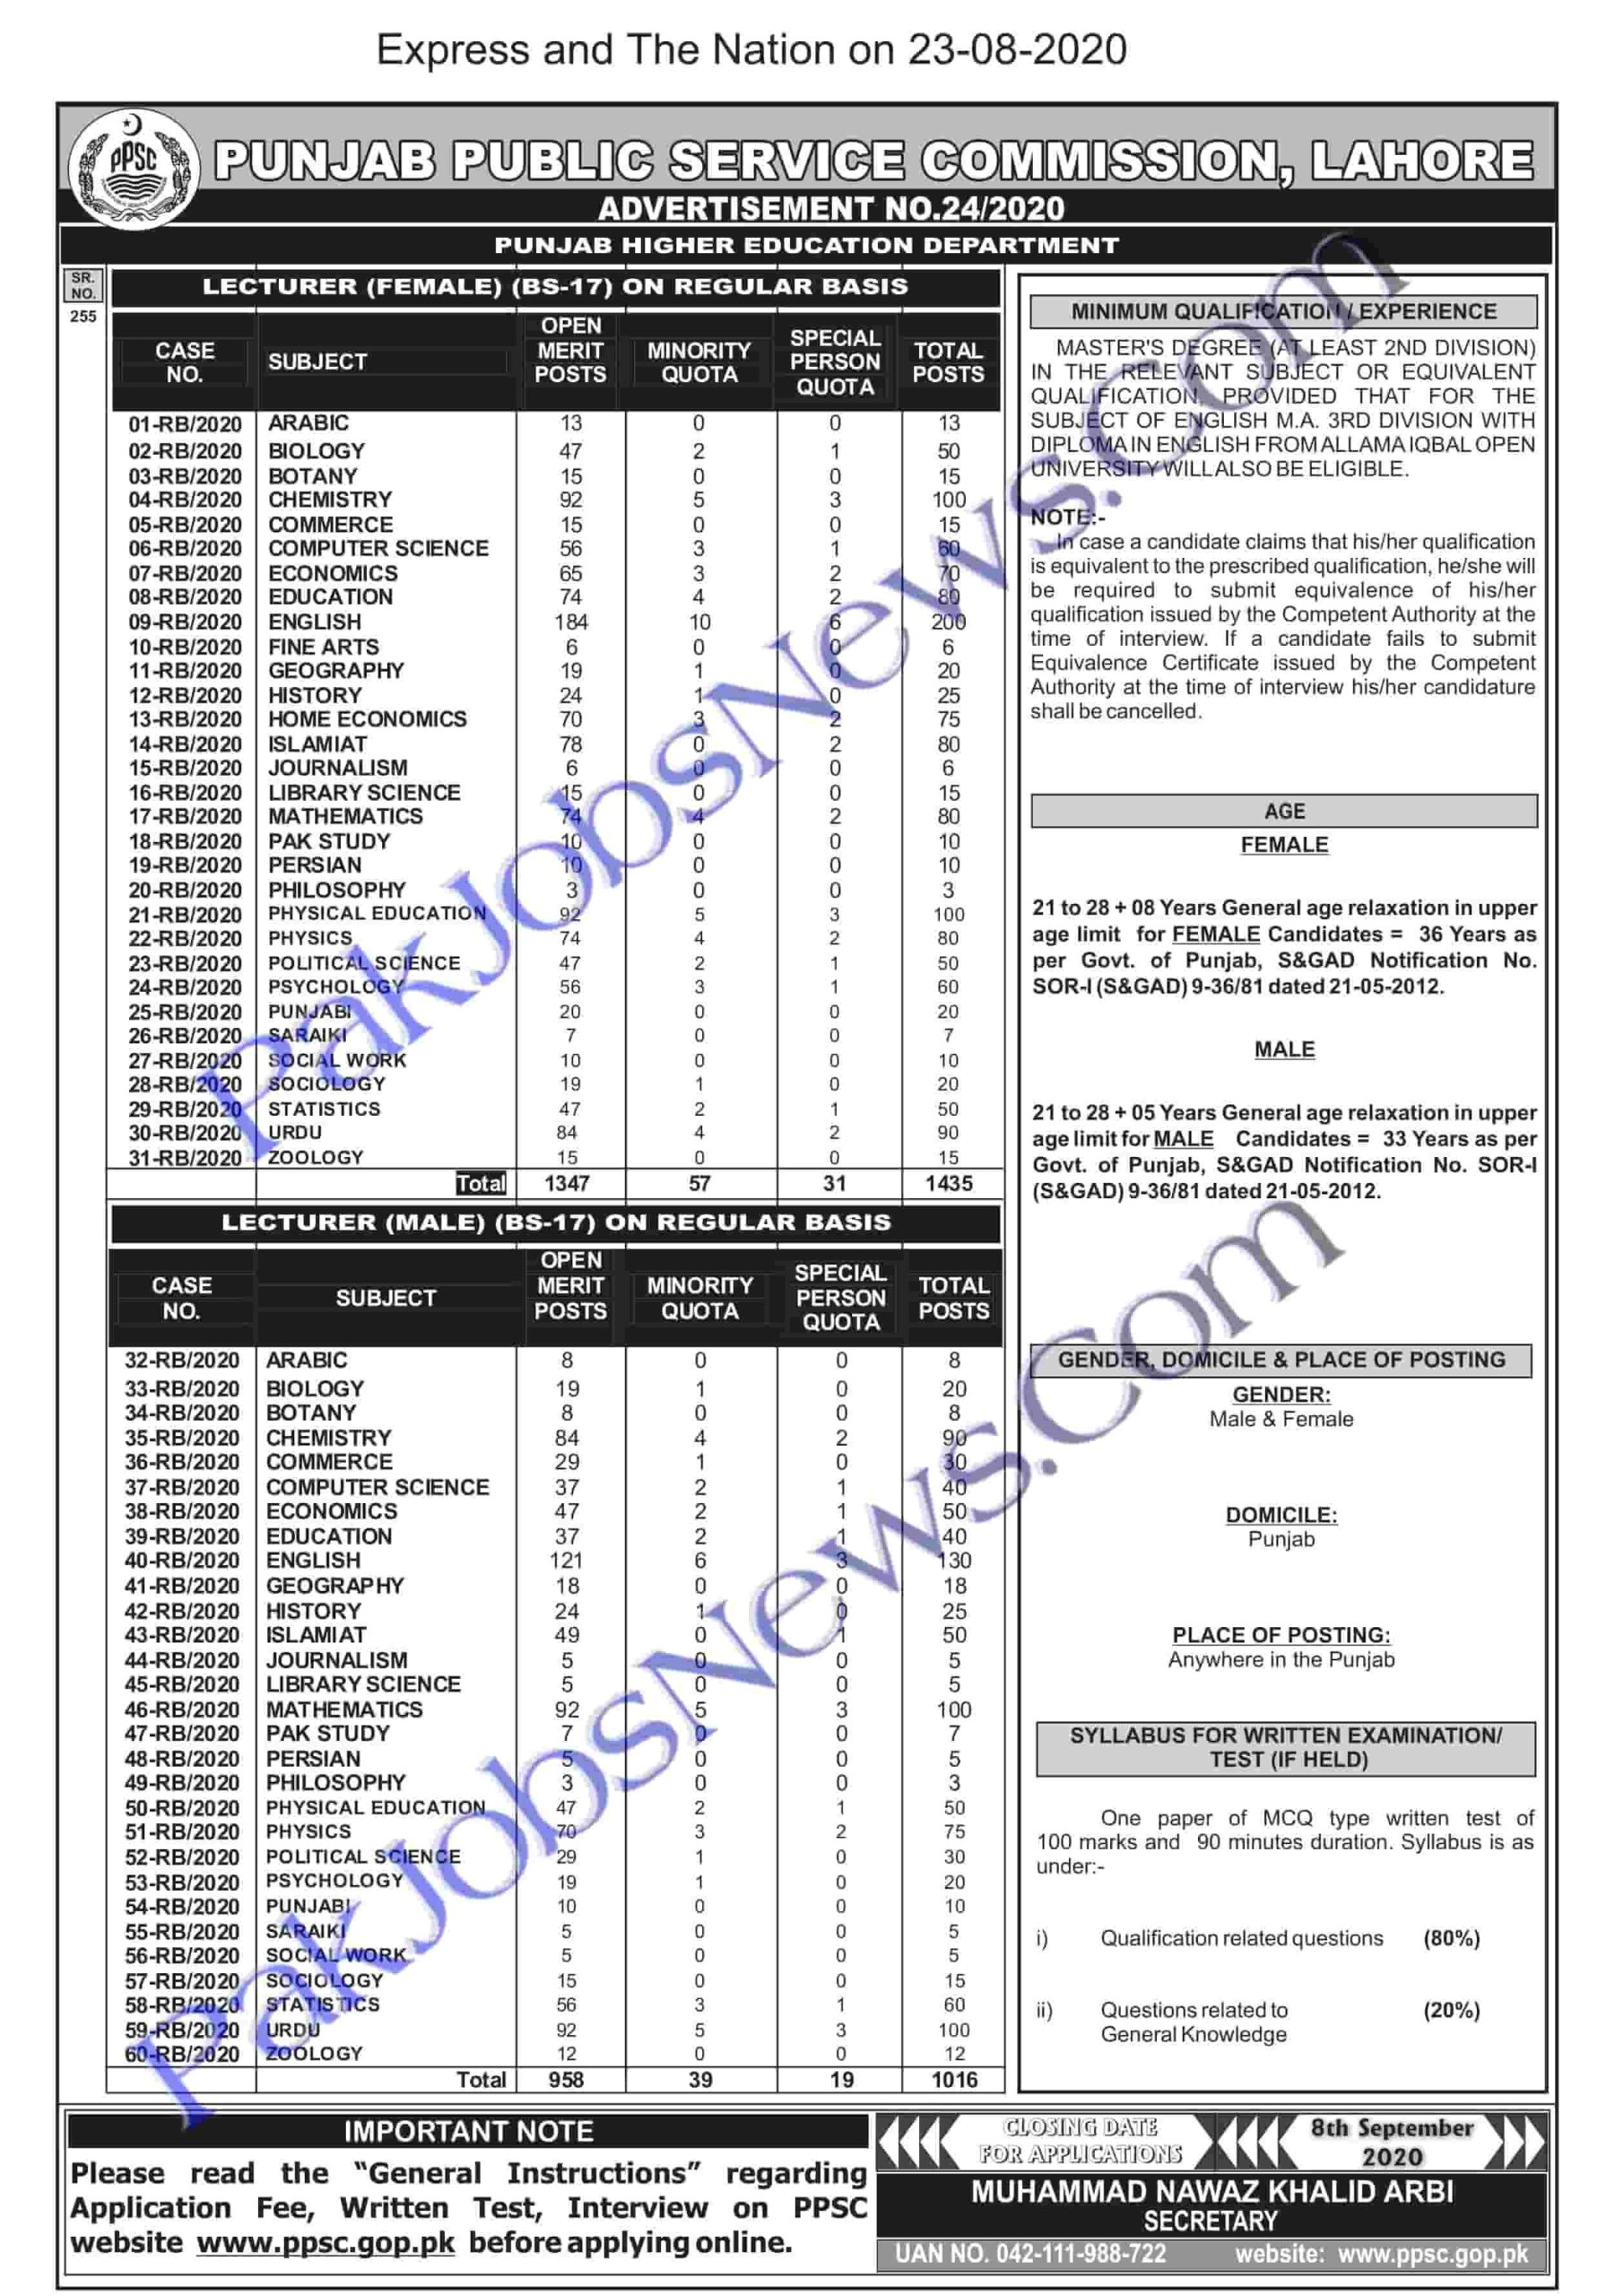 PPSC Lecturers Jobs 2020 apply online